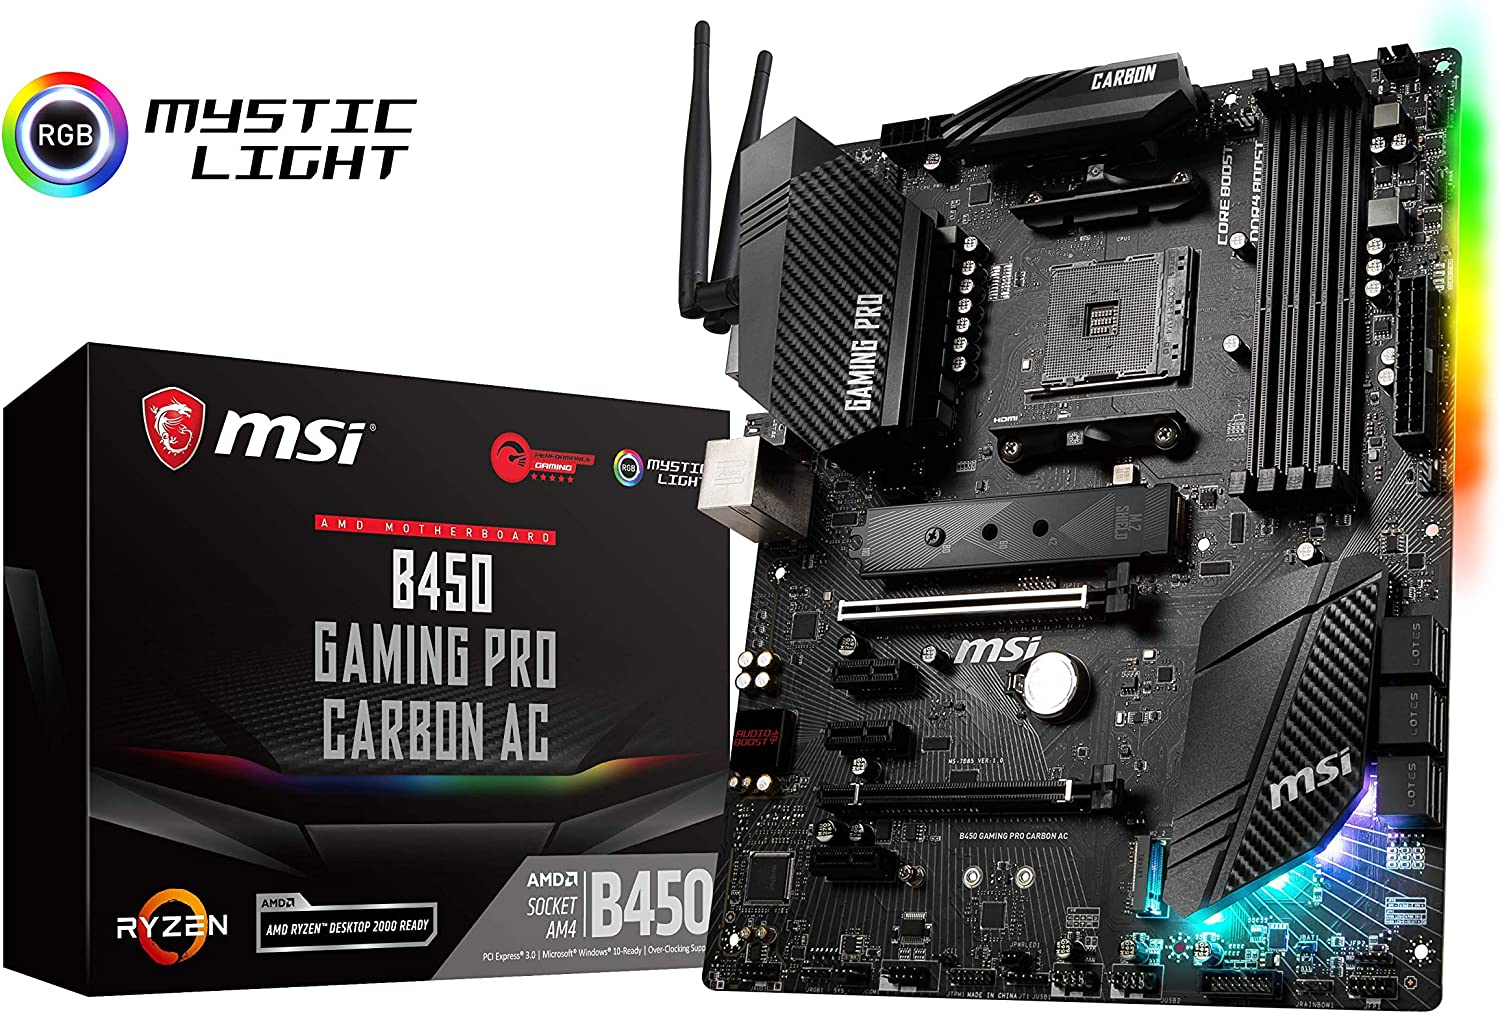 MSI B450 Gaming Pro Carbon AC Socket AM4 ATX Motherboard Black